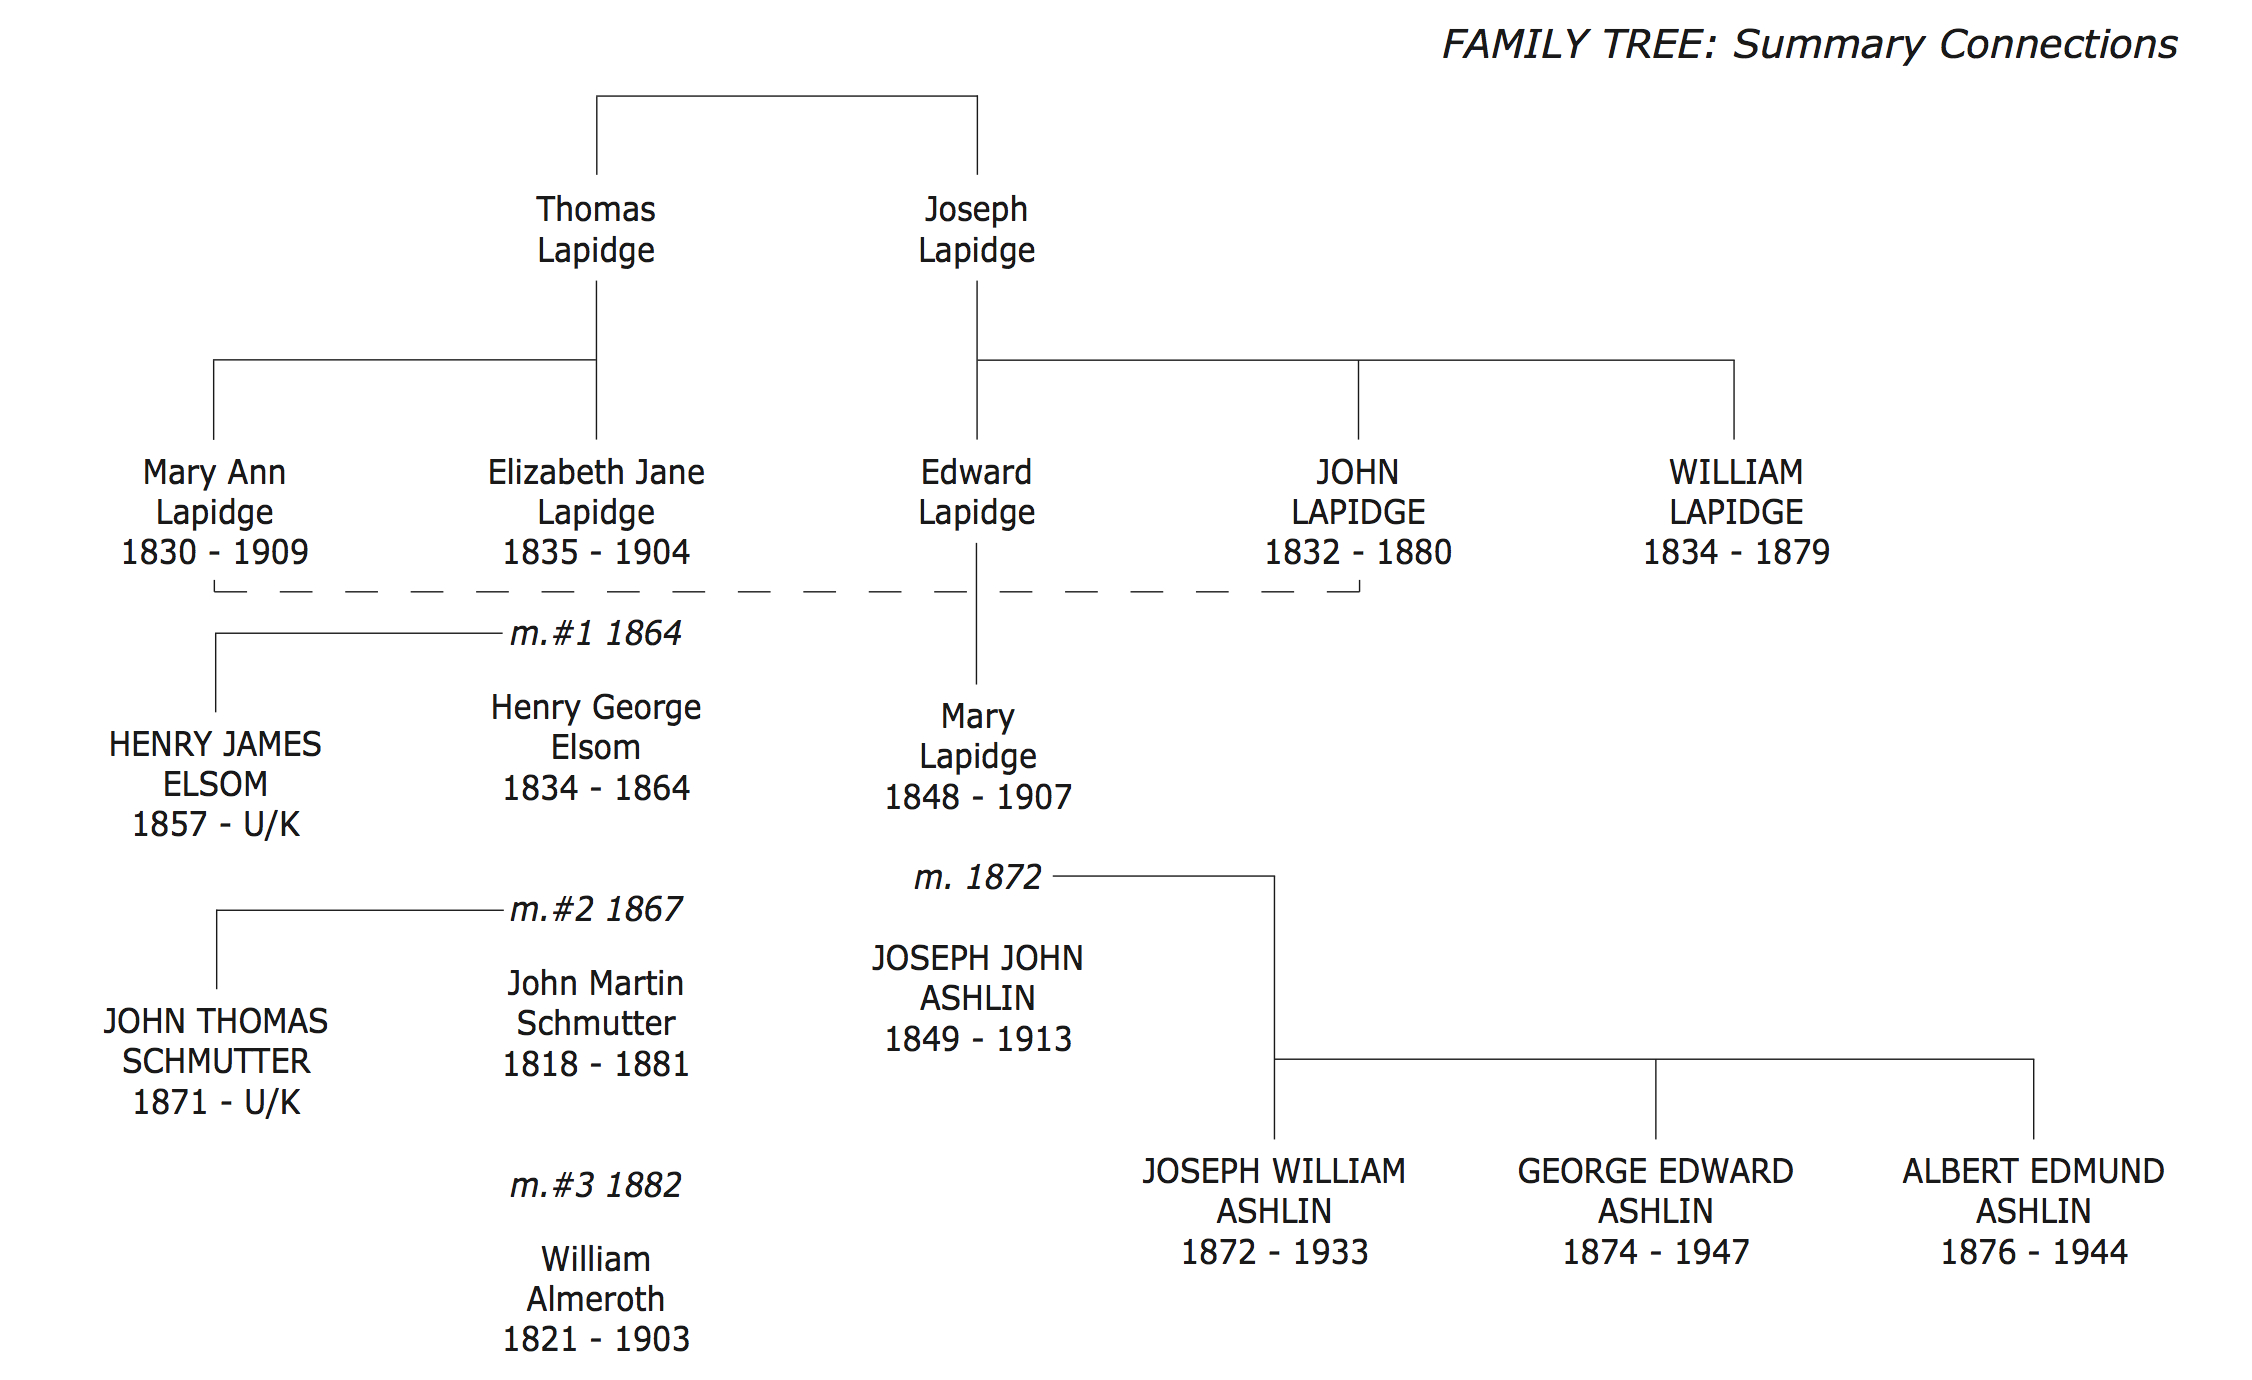 Lapidge Ashlin Family Tree